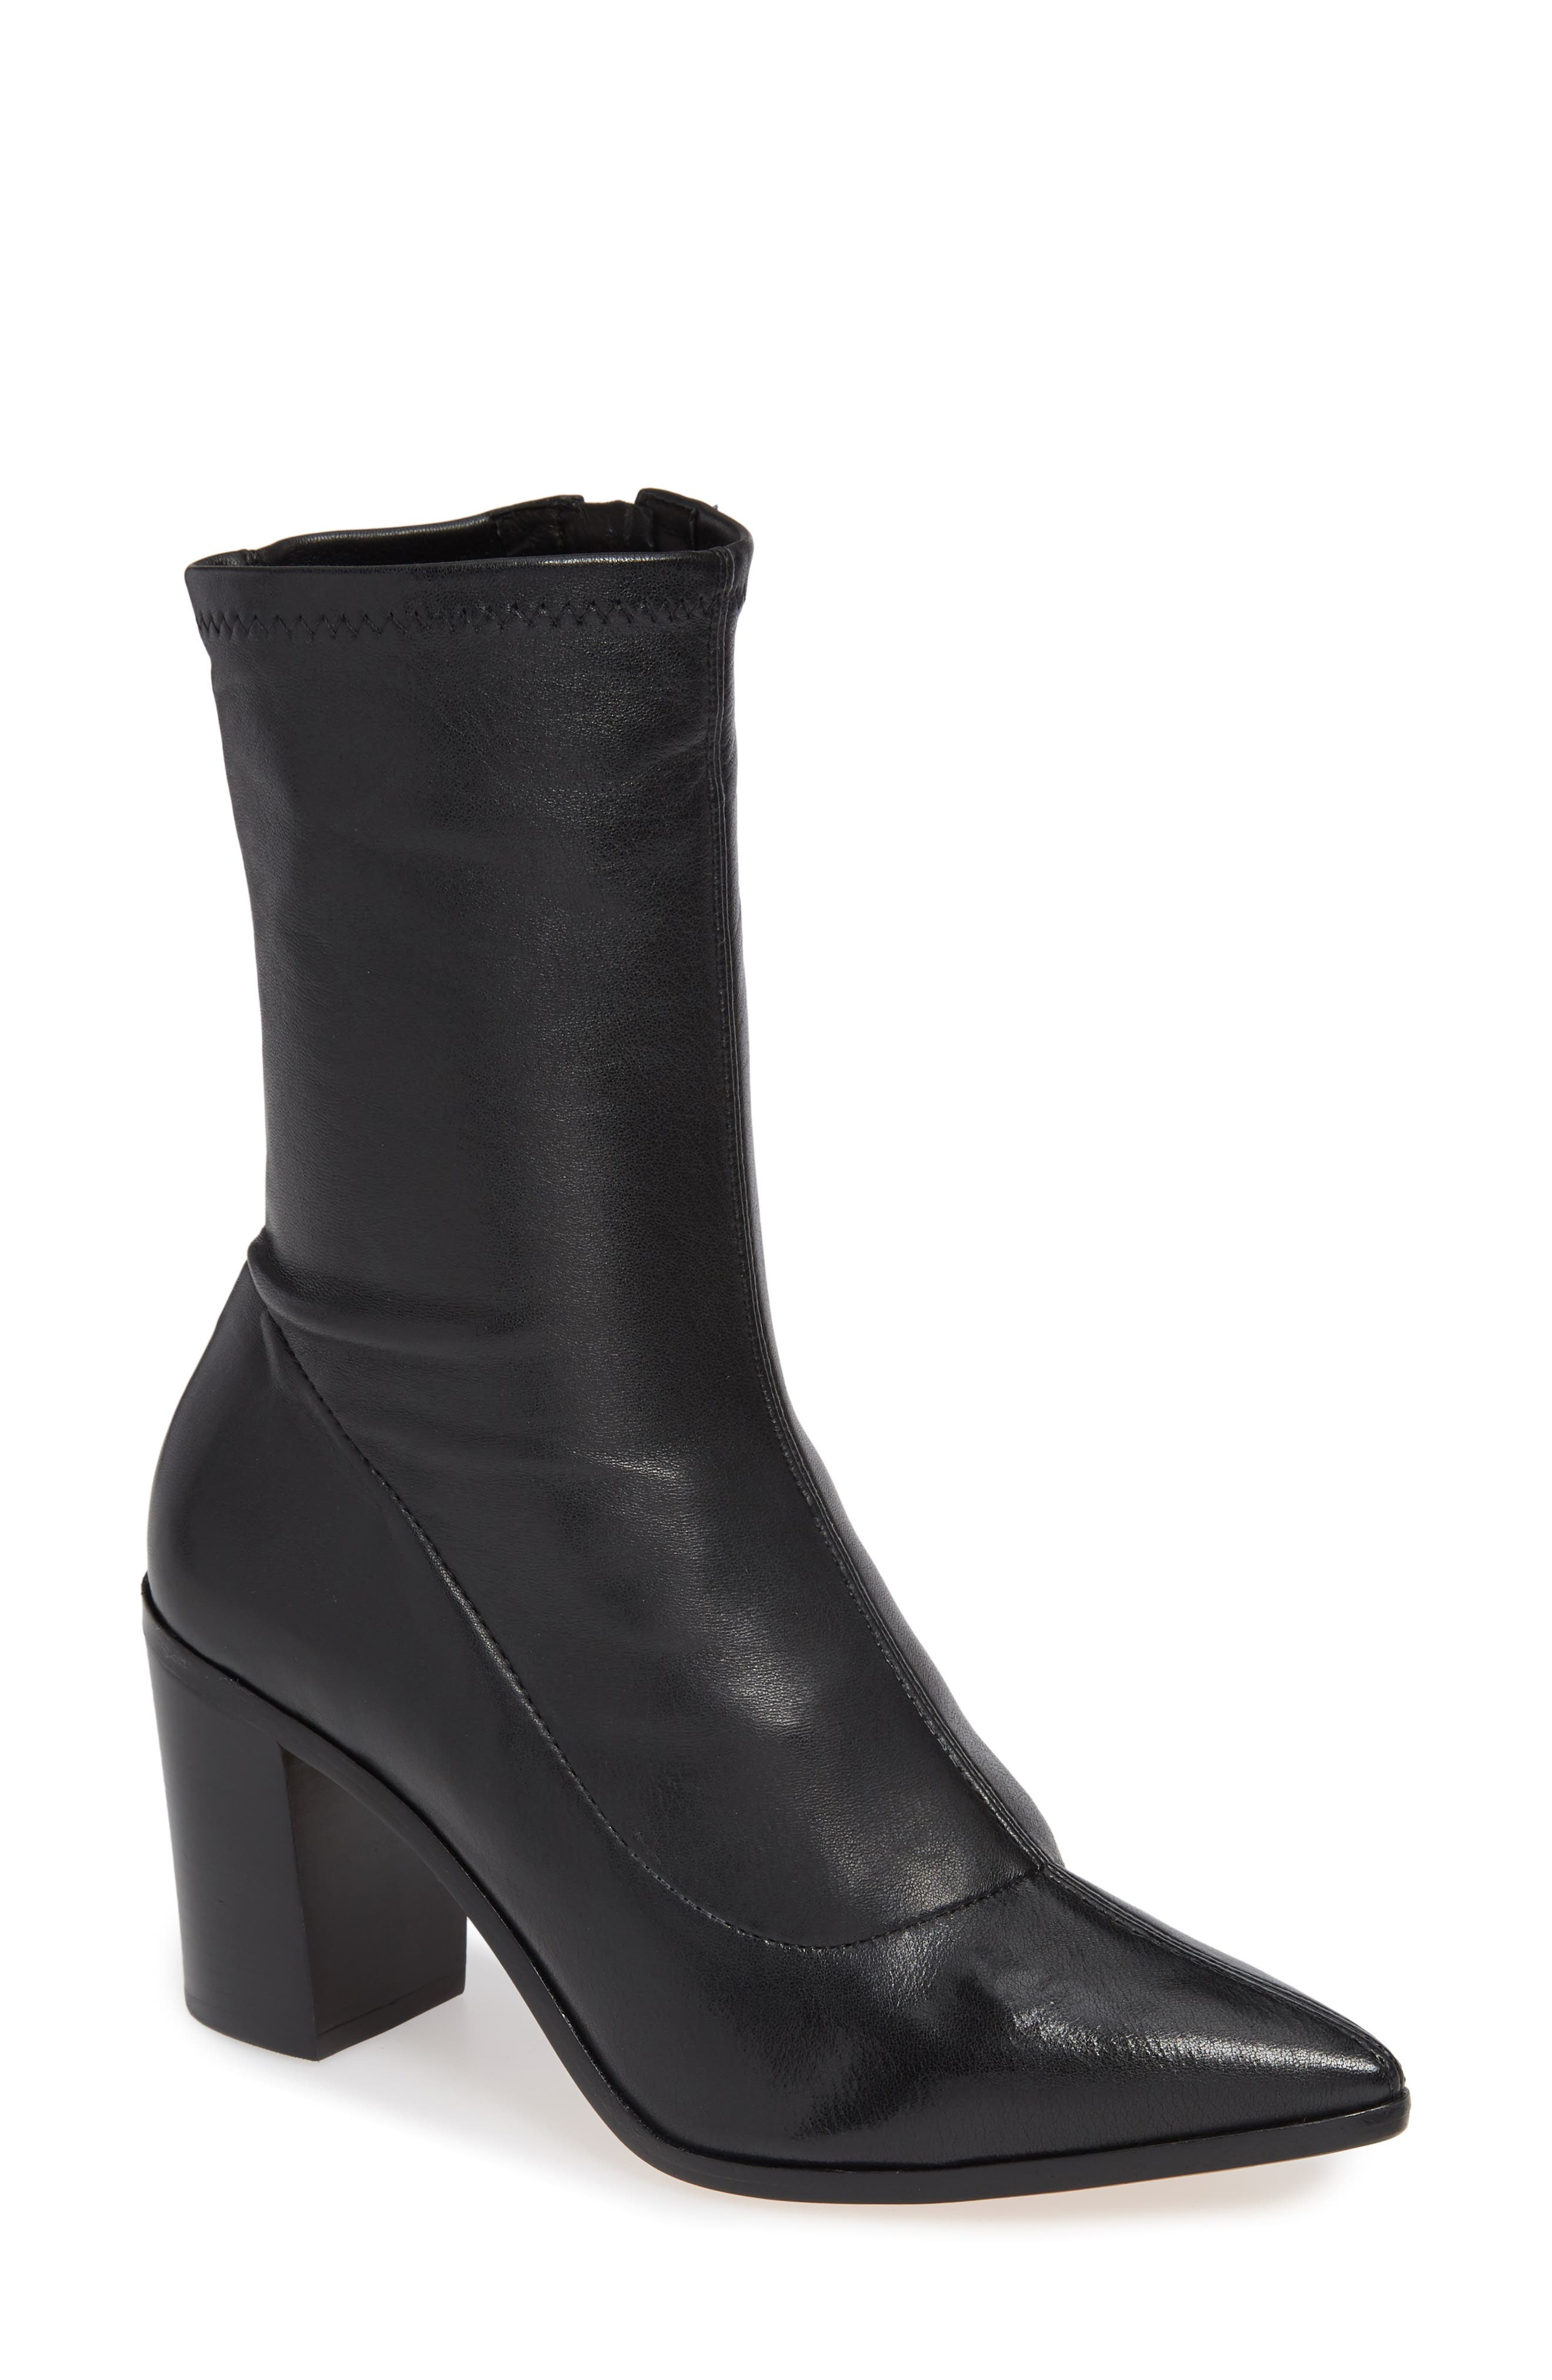 Amellie Pointy Toe Bootie,                         Main,                         color, BLACK LEATHER